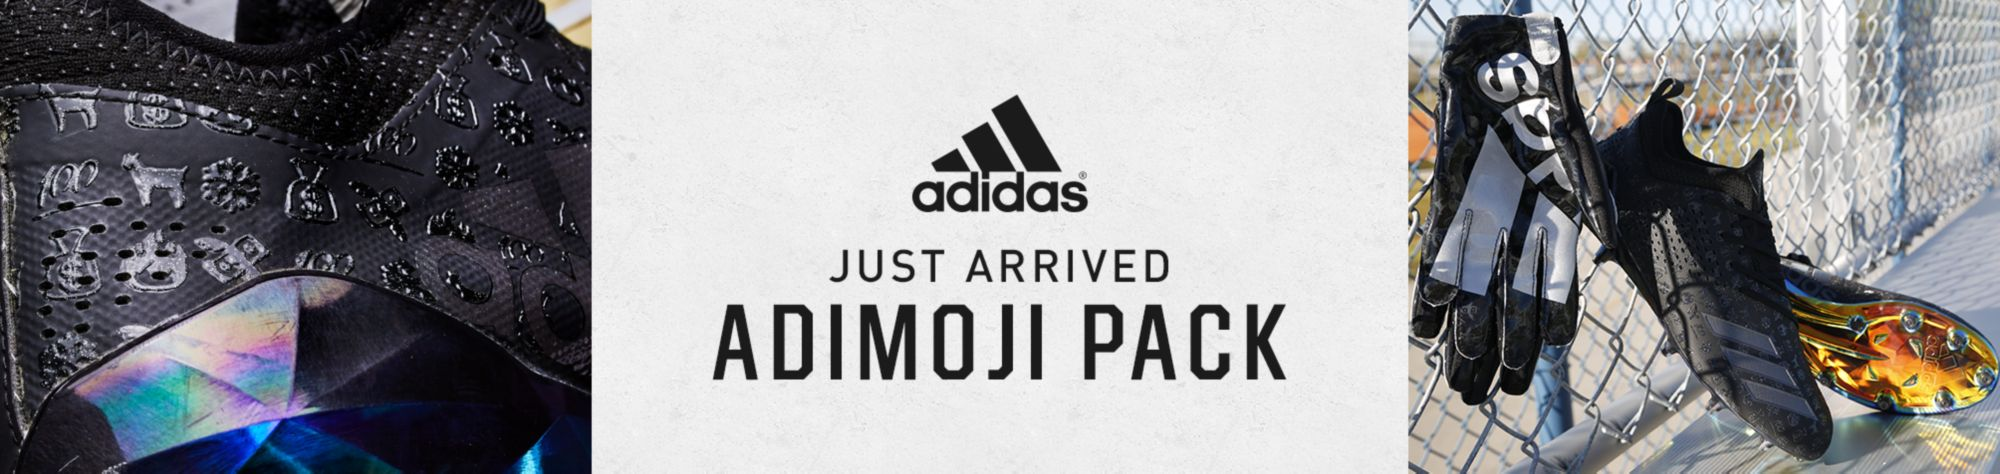 New adidas adimoji Pack